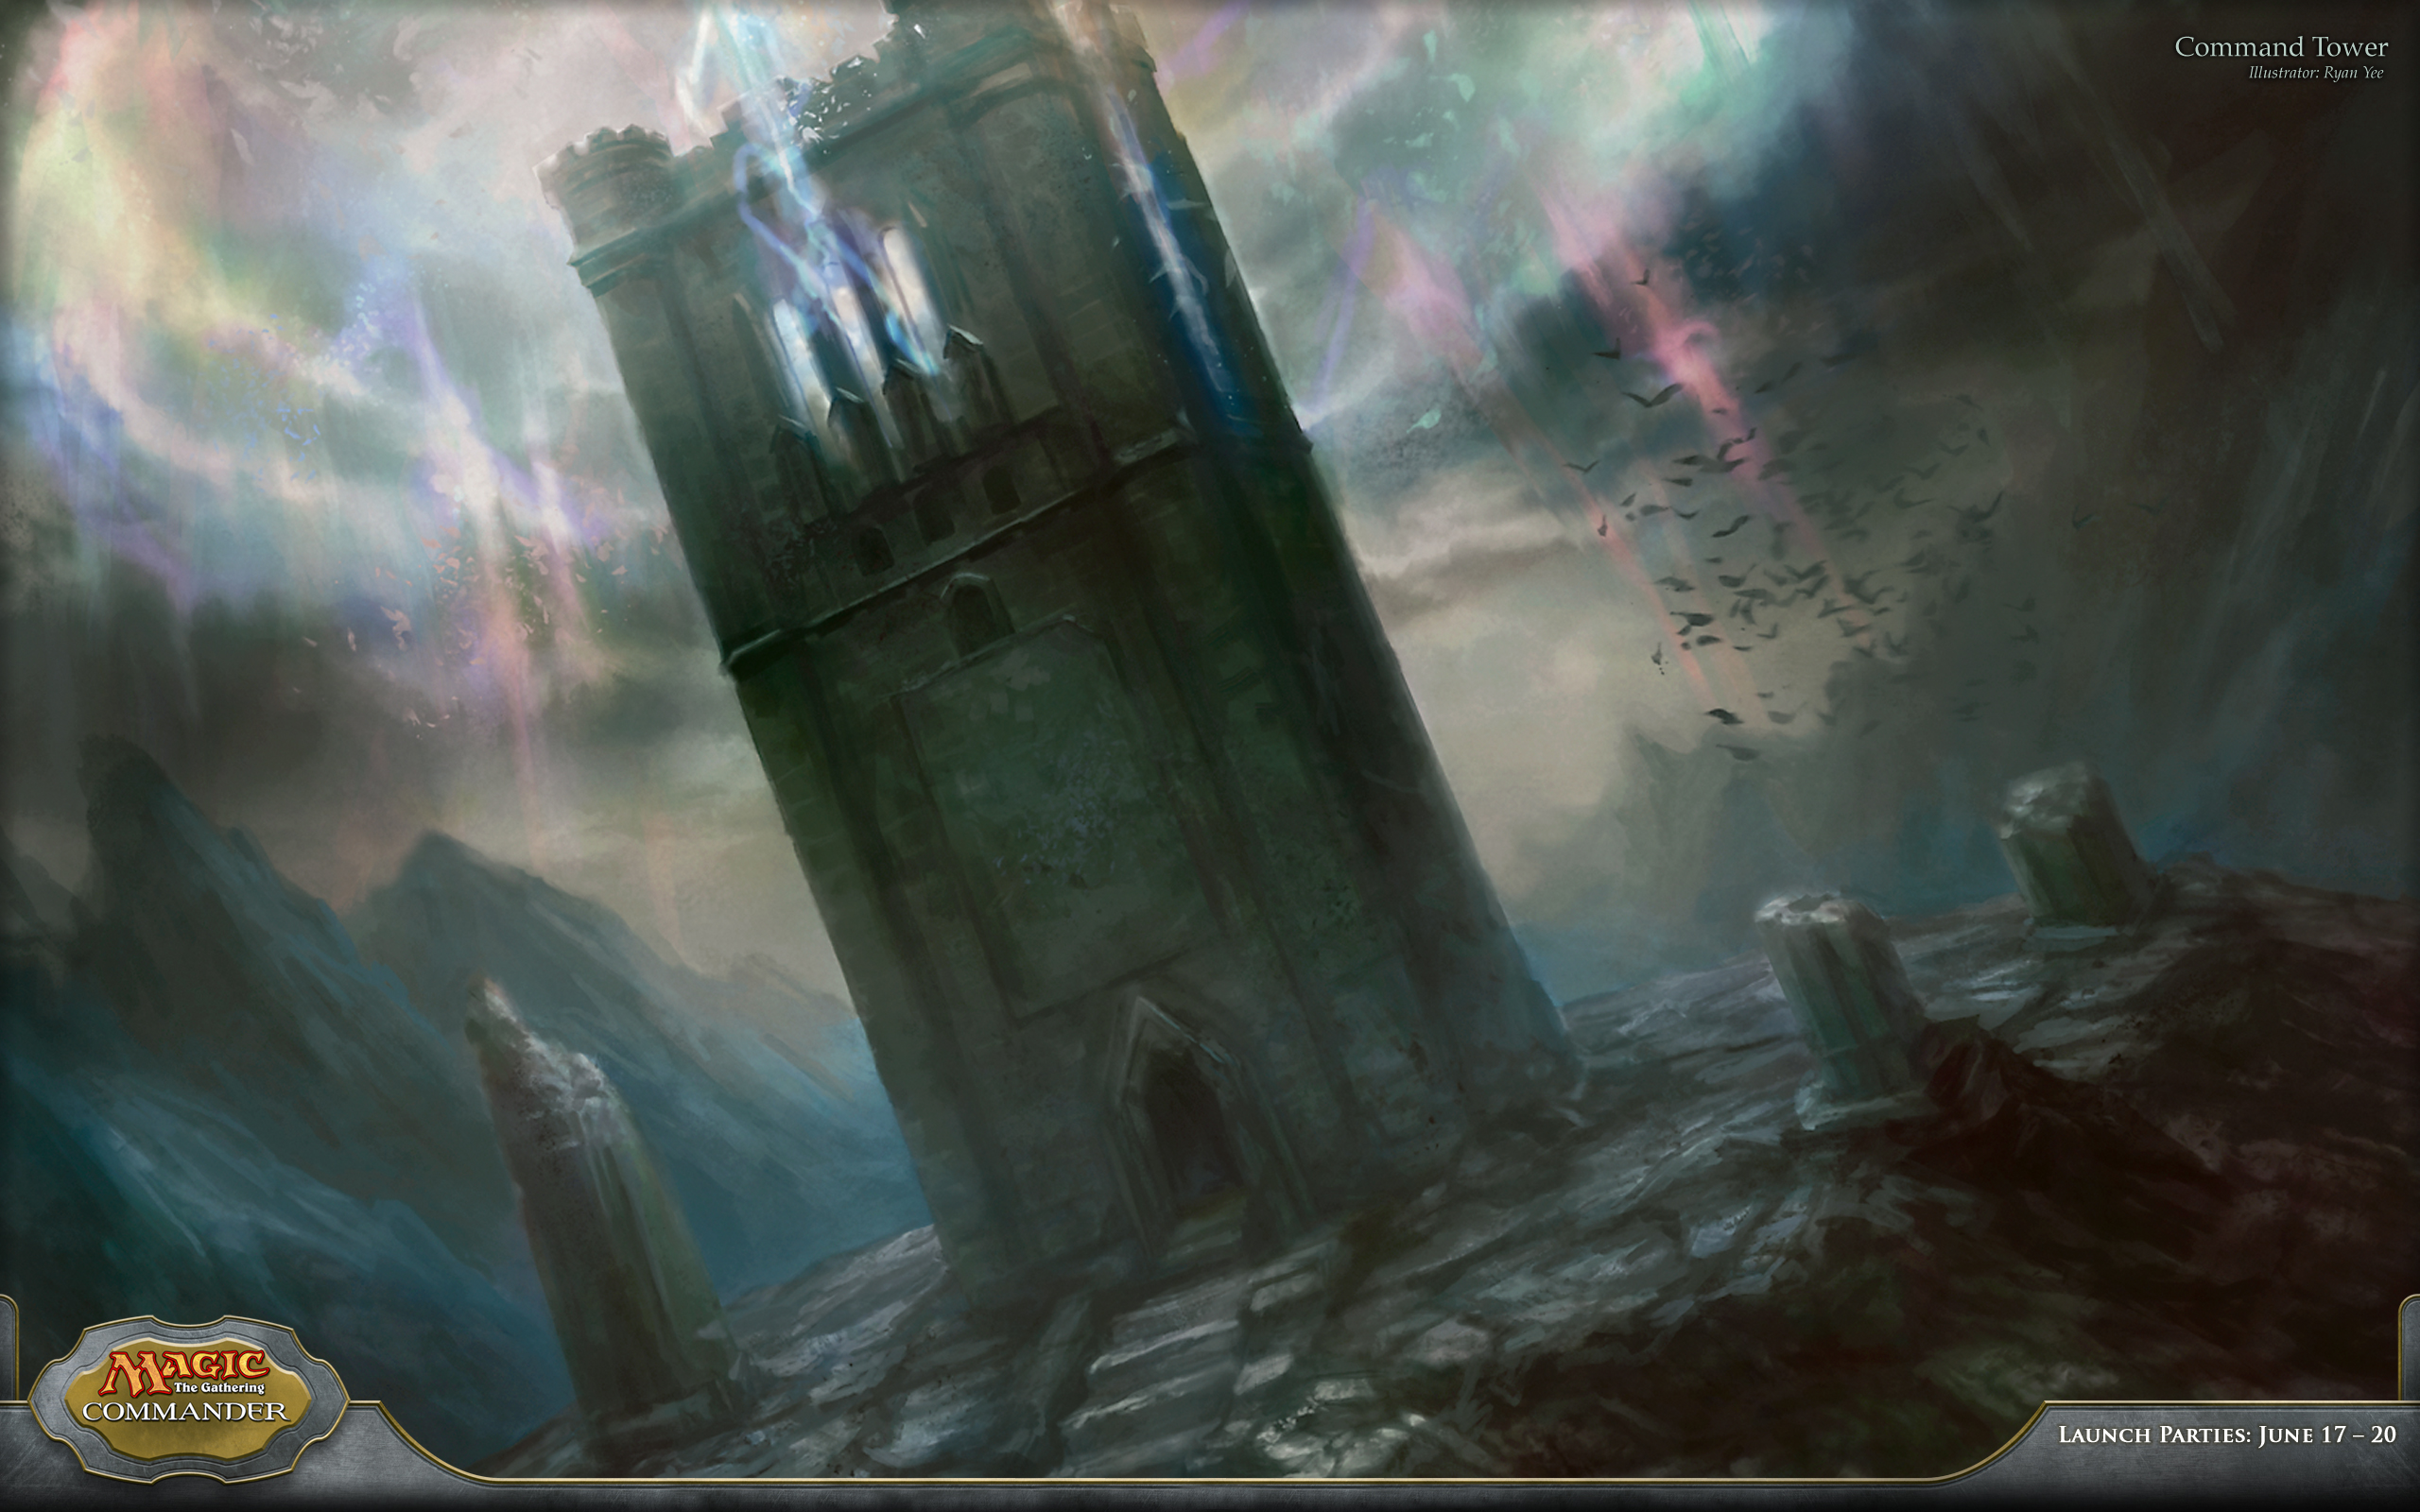 Magic Wallpaper Iphone X Wallpaper Of The Week Command Tower Magic The Gathering